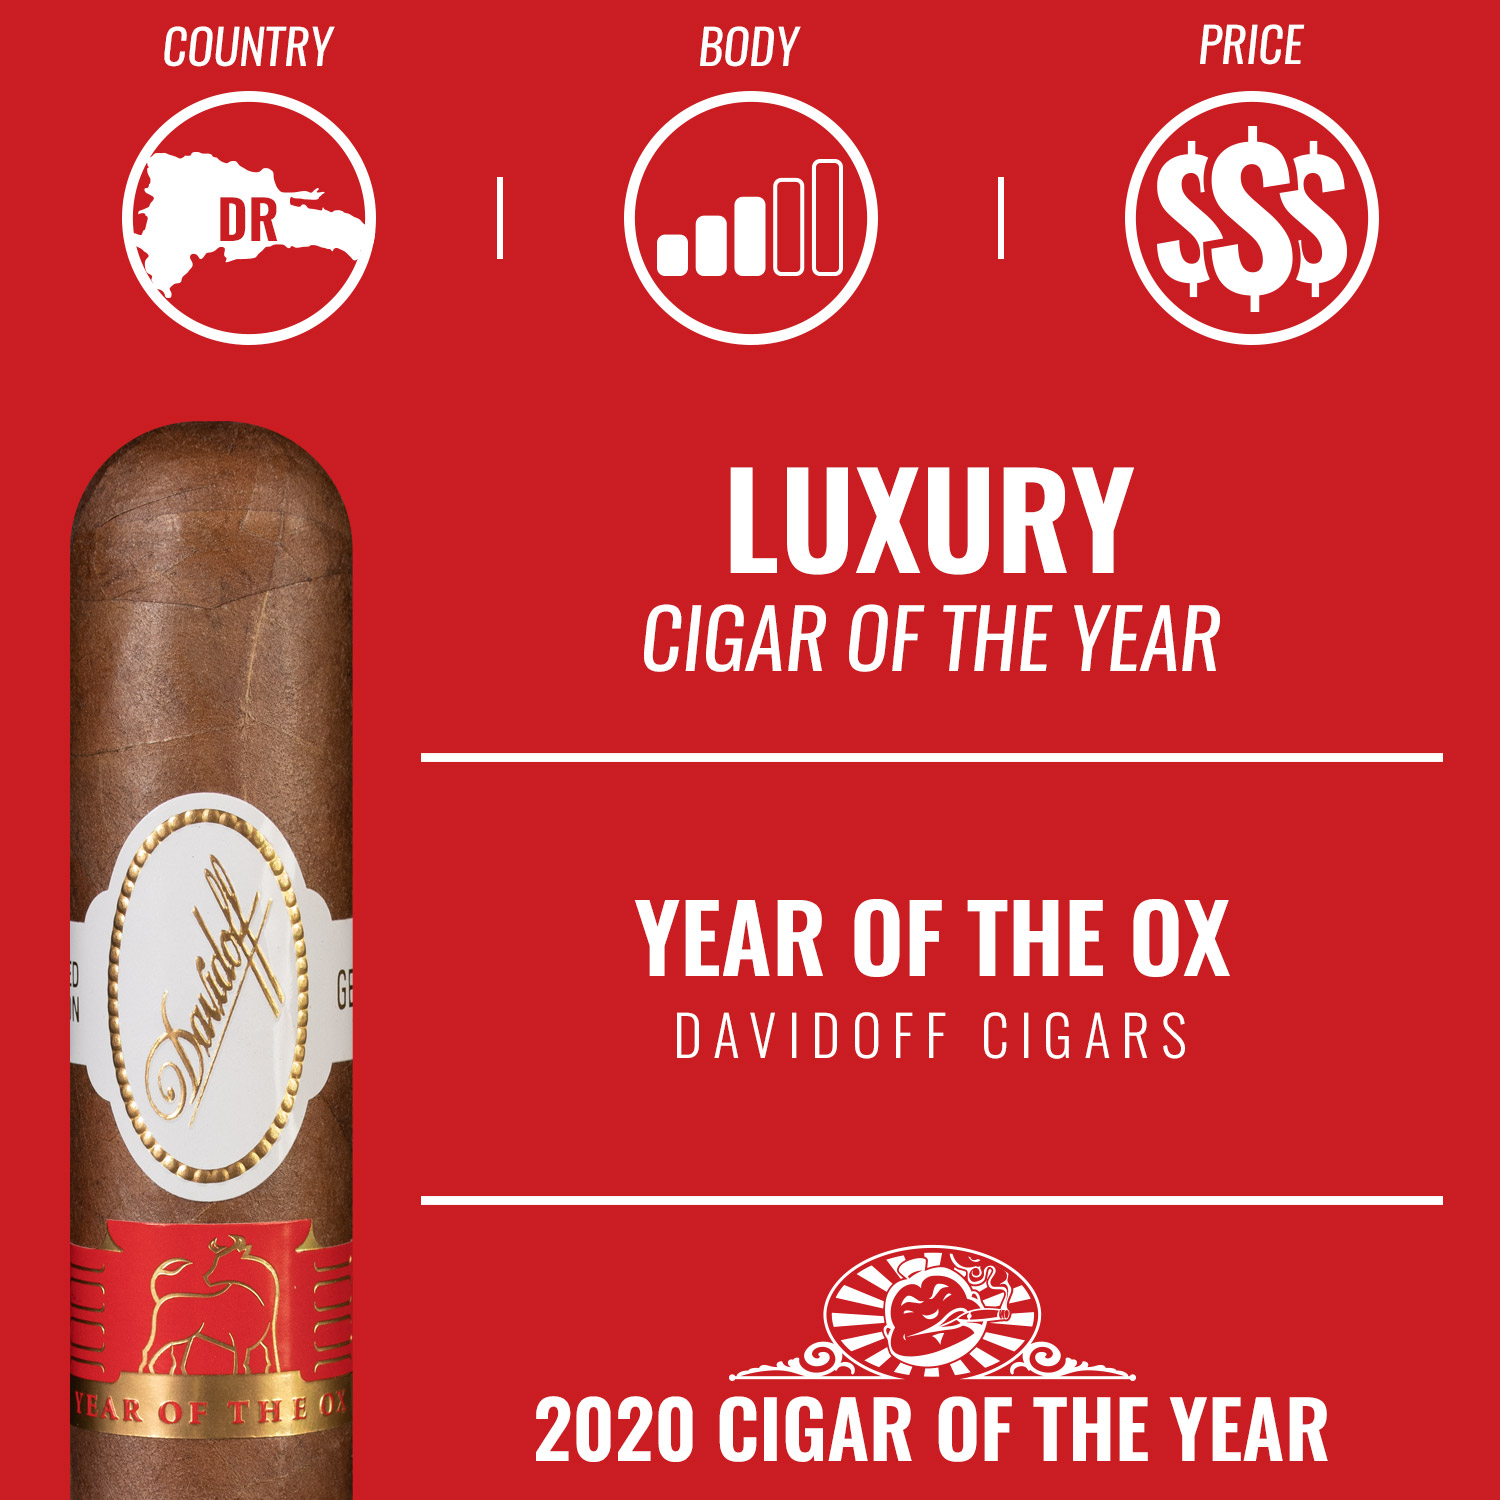 Davidoff Year of the Ox Limited Edition 2021 Luxury Cigar of the Year 2020